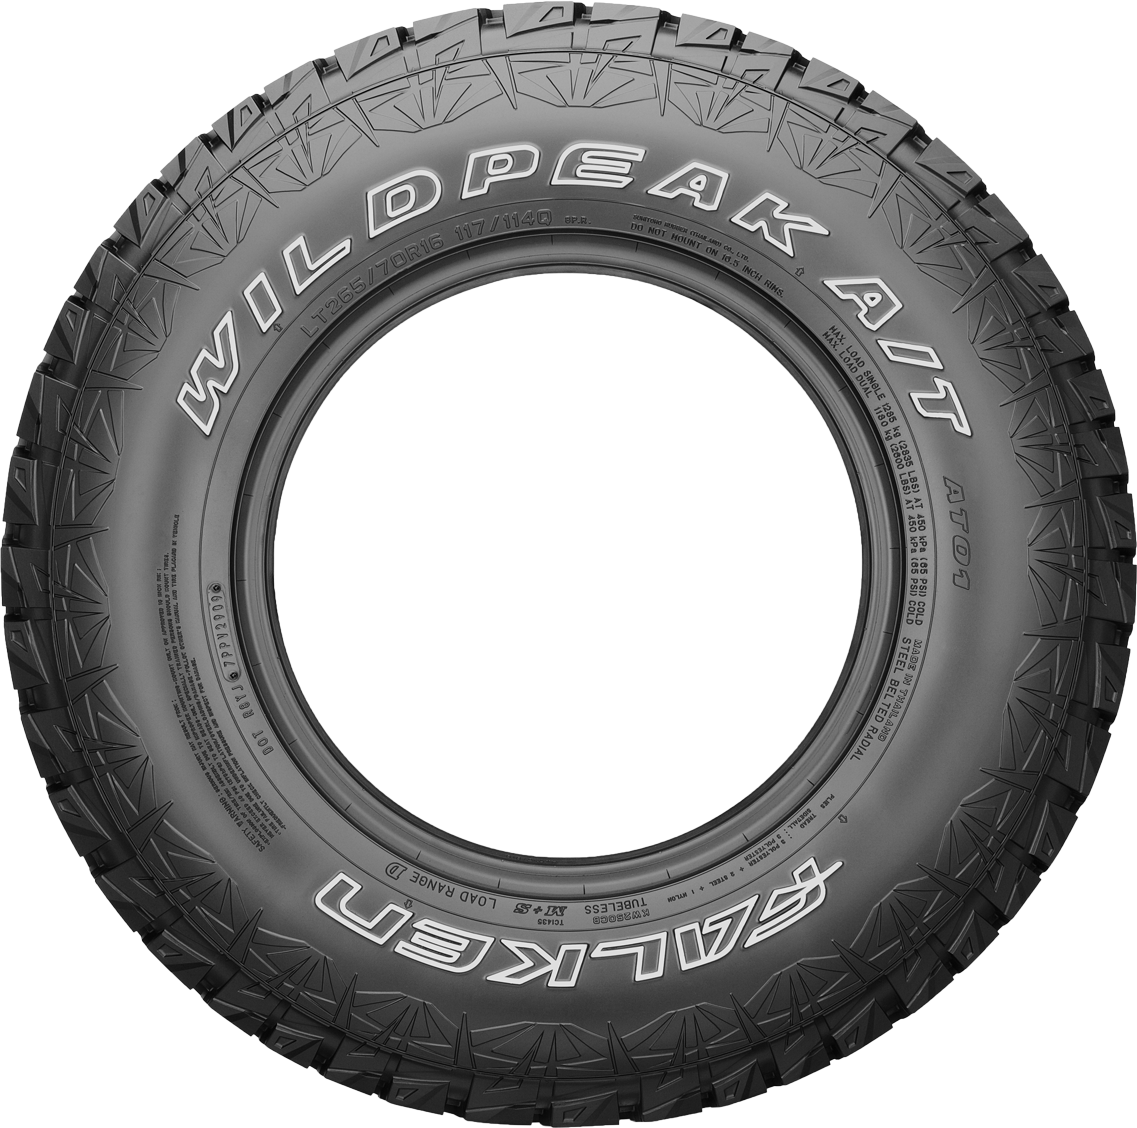 How To Read A Tire Sidewall >> Falken WildPeak AT 205/80xR16 110R   RoughTrax 4x4